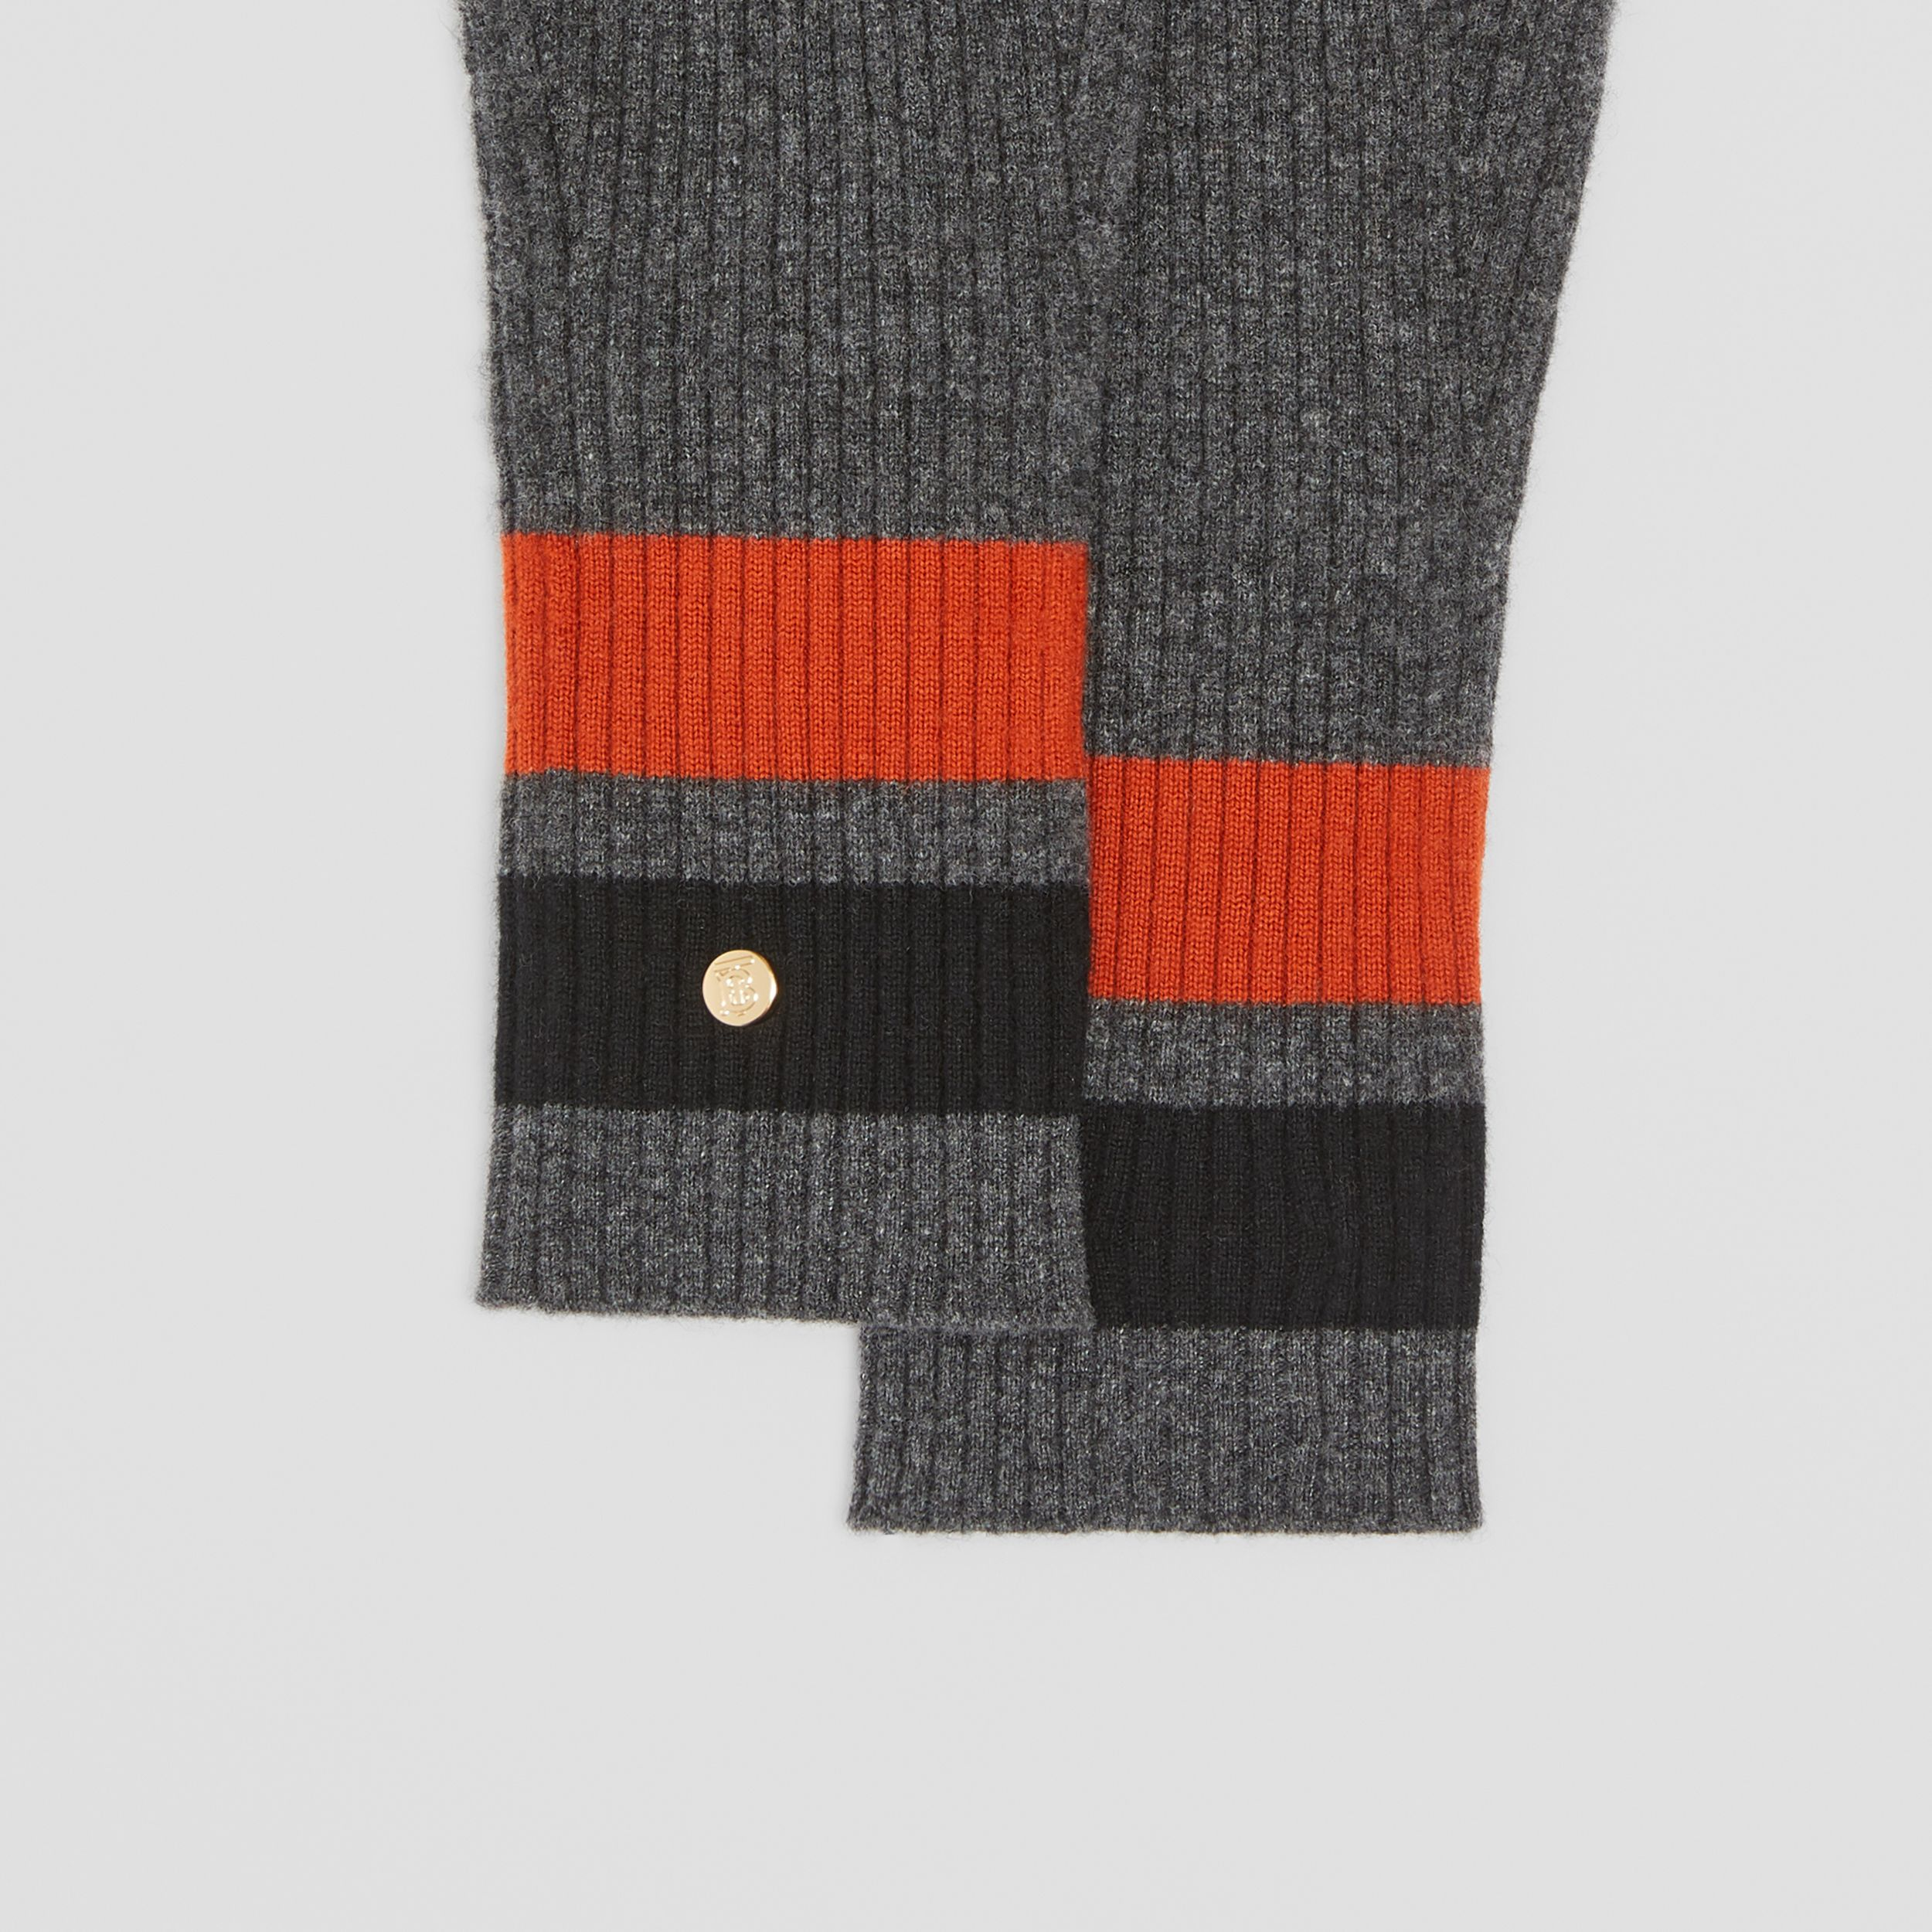 Monogram Motif Merino Wool Cashmere Gloves in Dark Grey | Burberry - 2